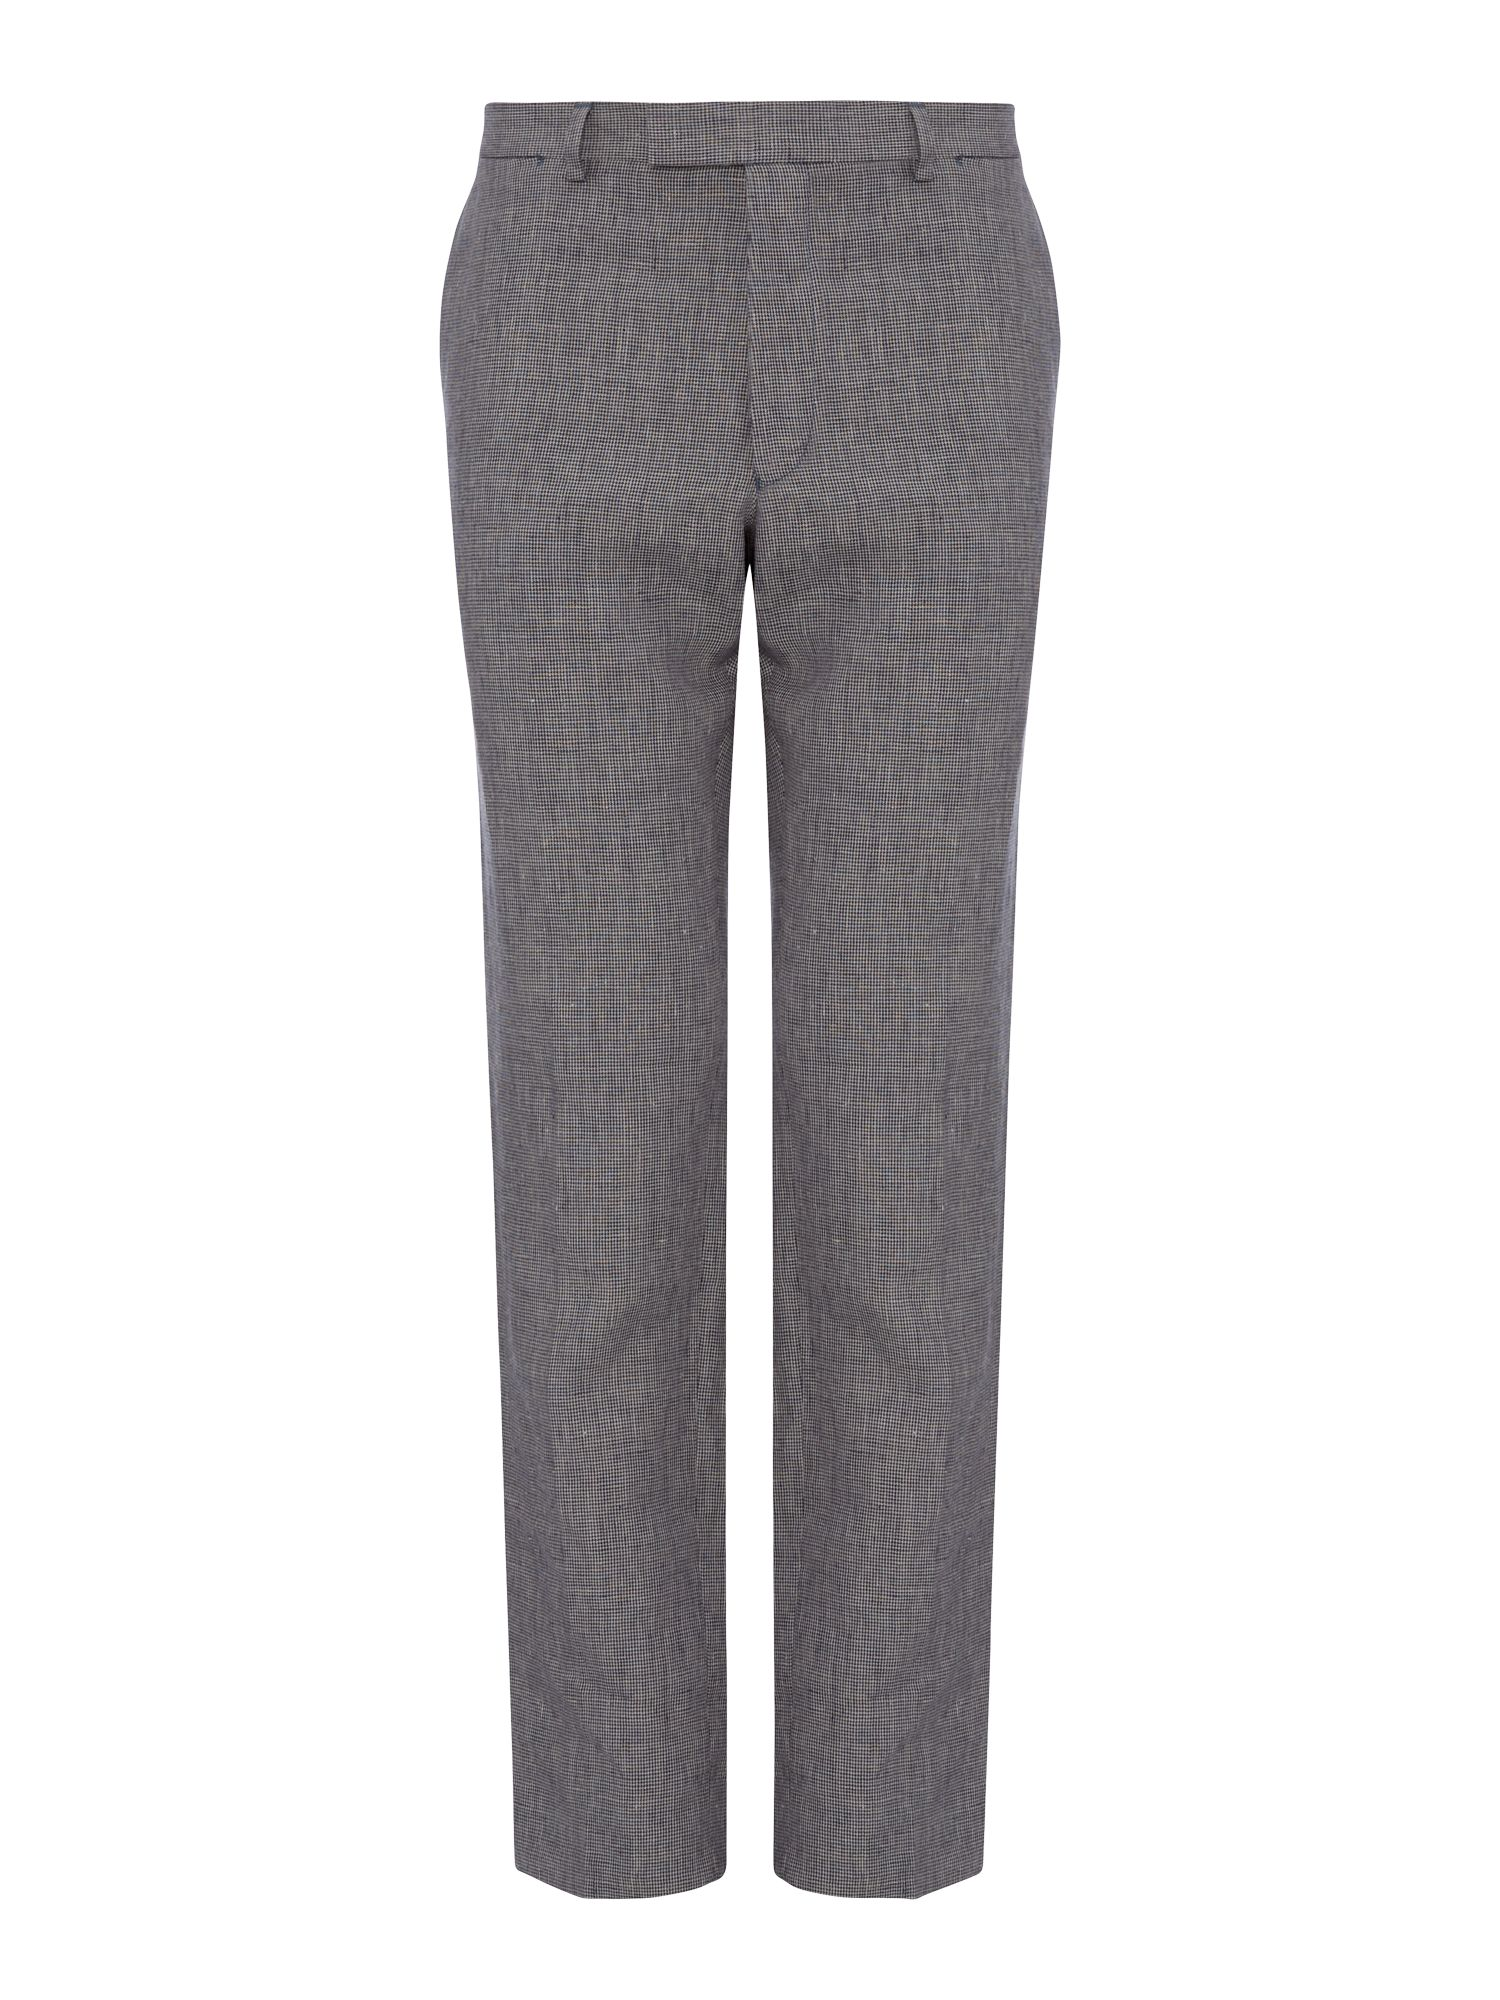 Irish Linen Puppytooth suit Trousers